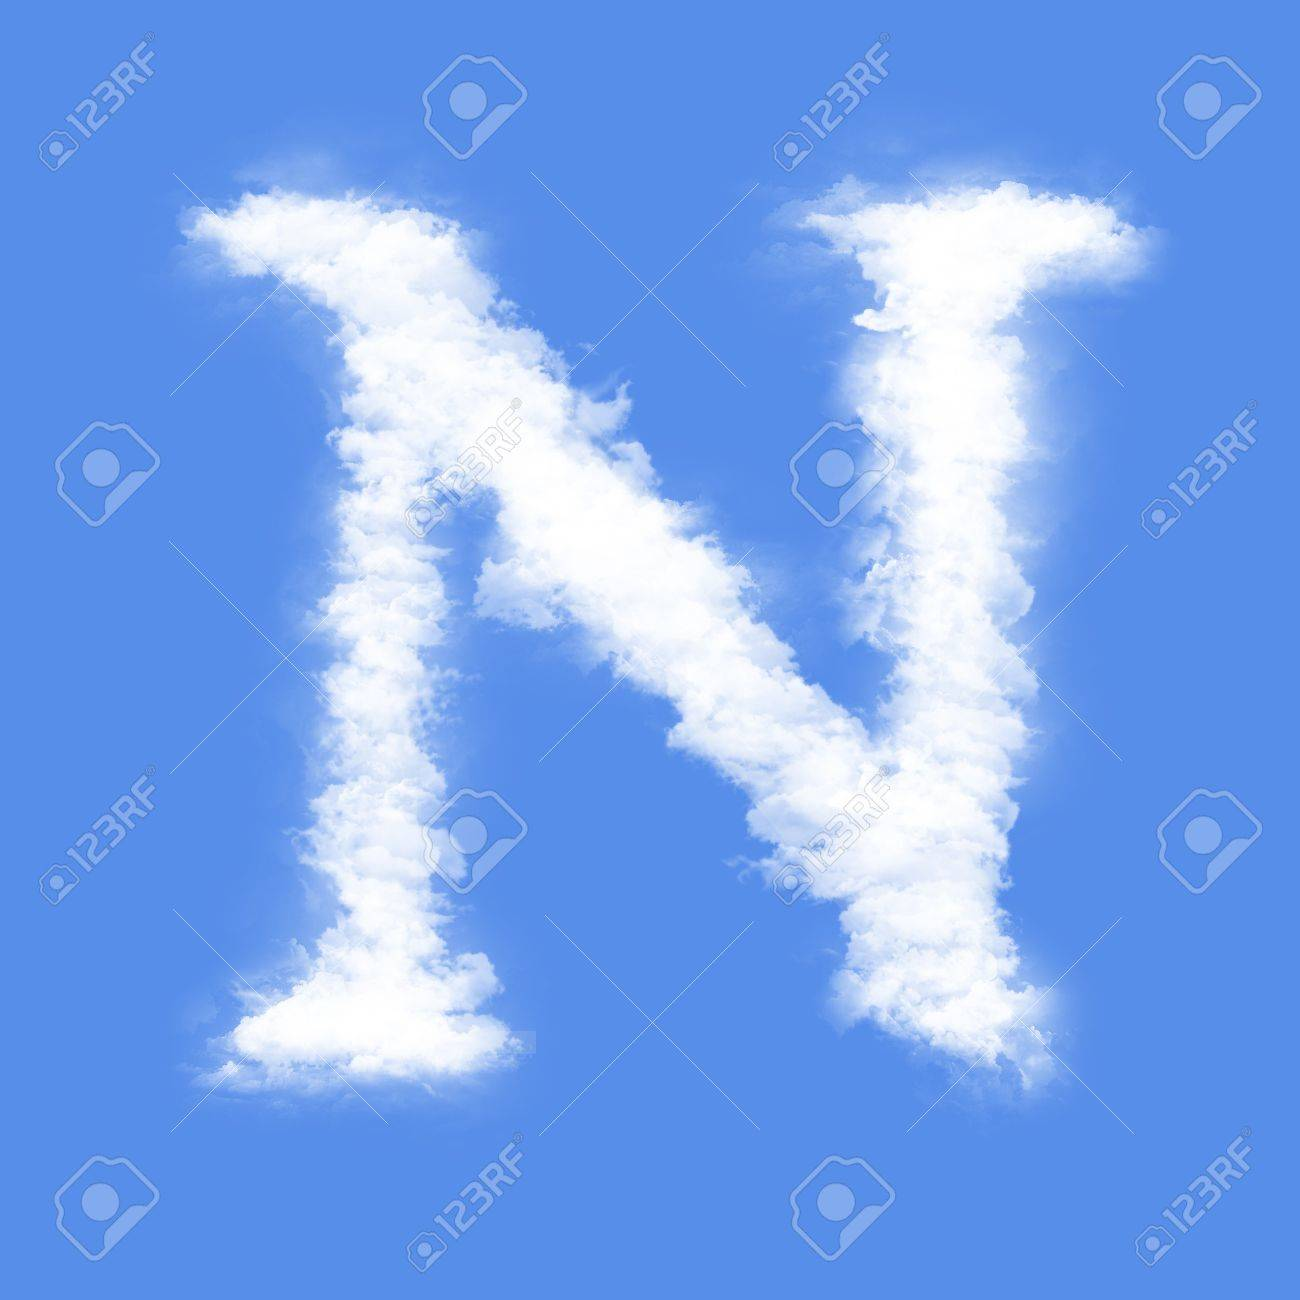 clouds in shape of the letter n stock photo 6994883